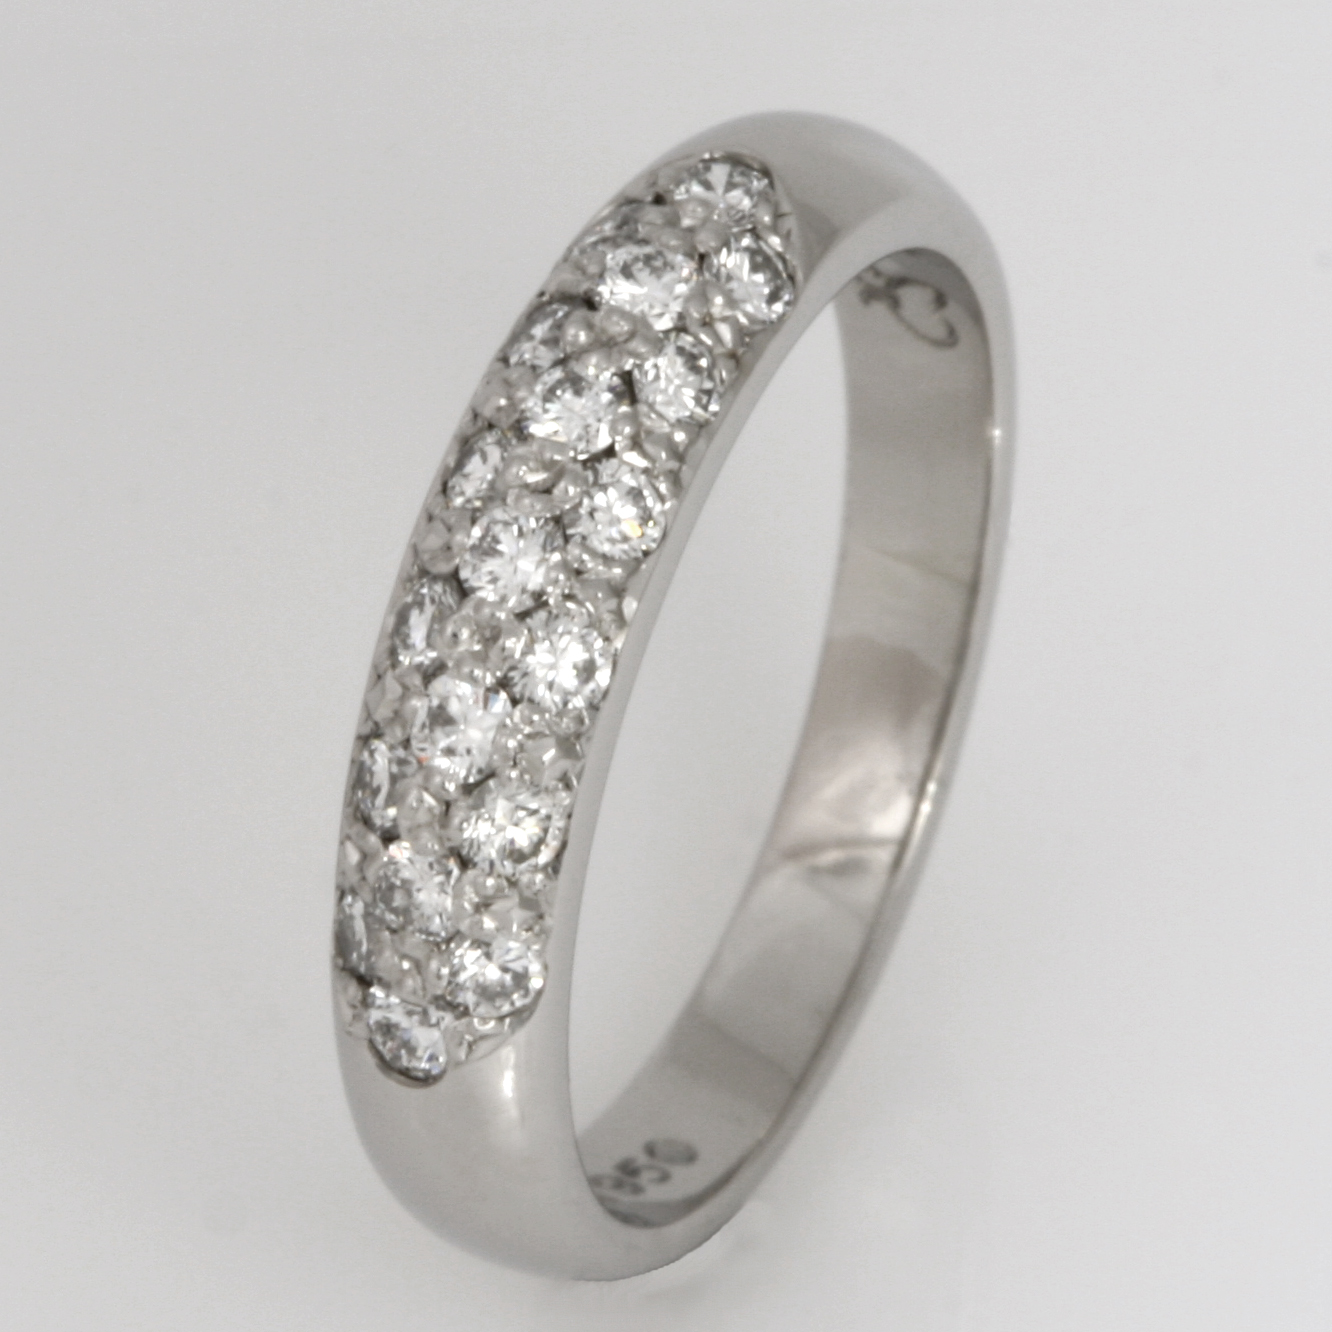 Handmade ladies palladium diamond set eternity ring